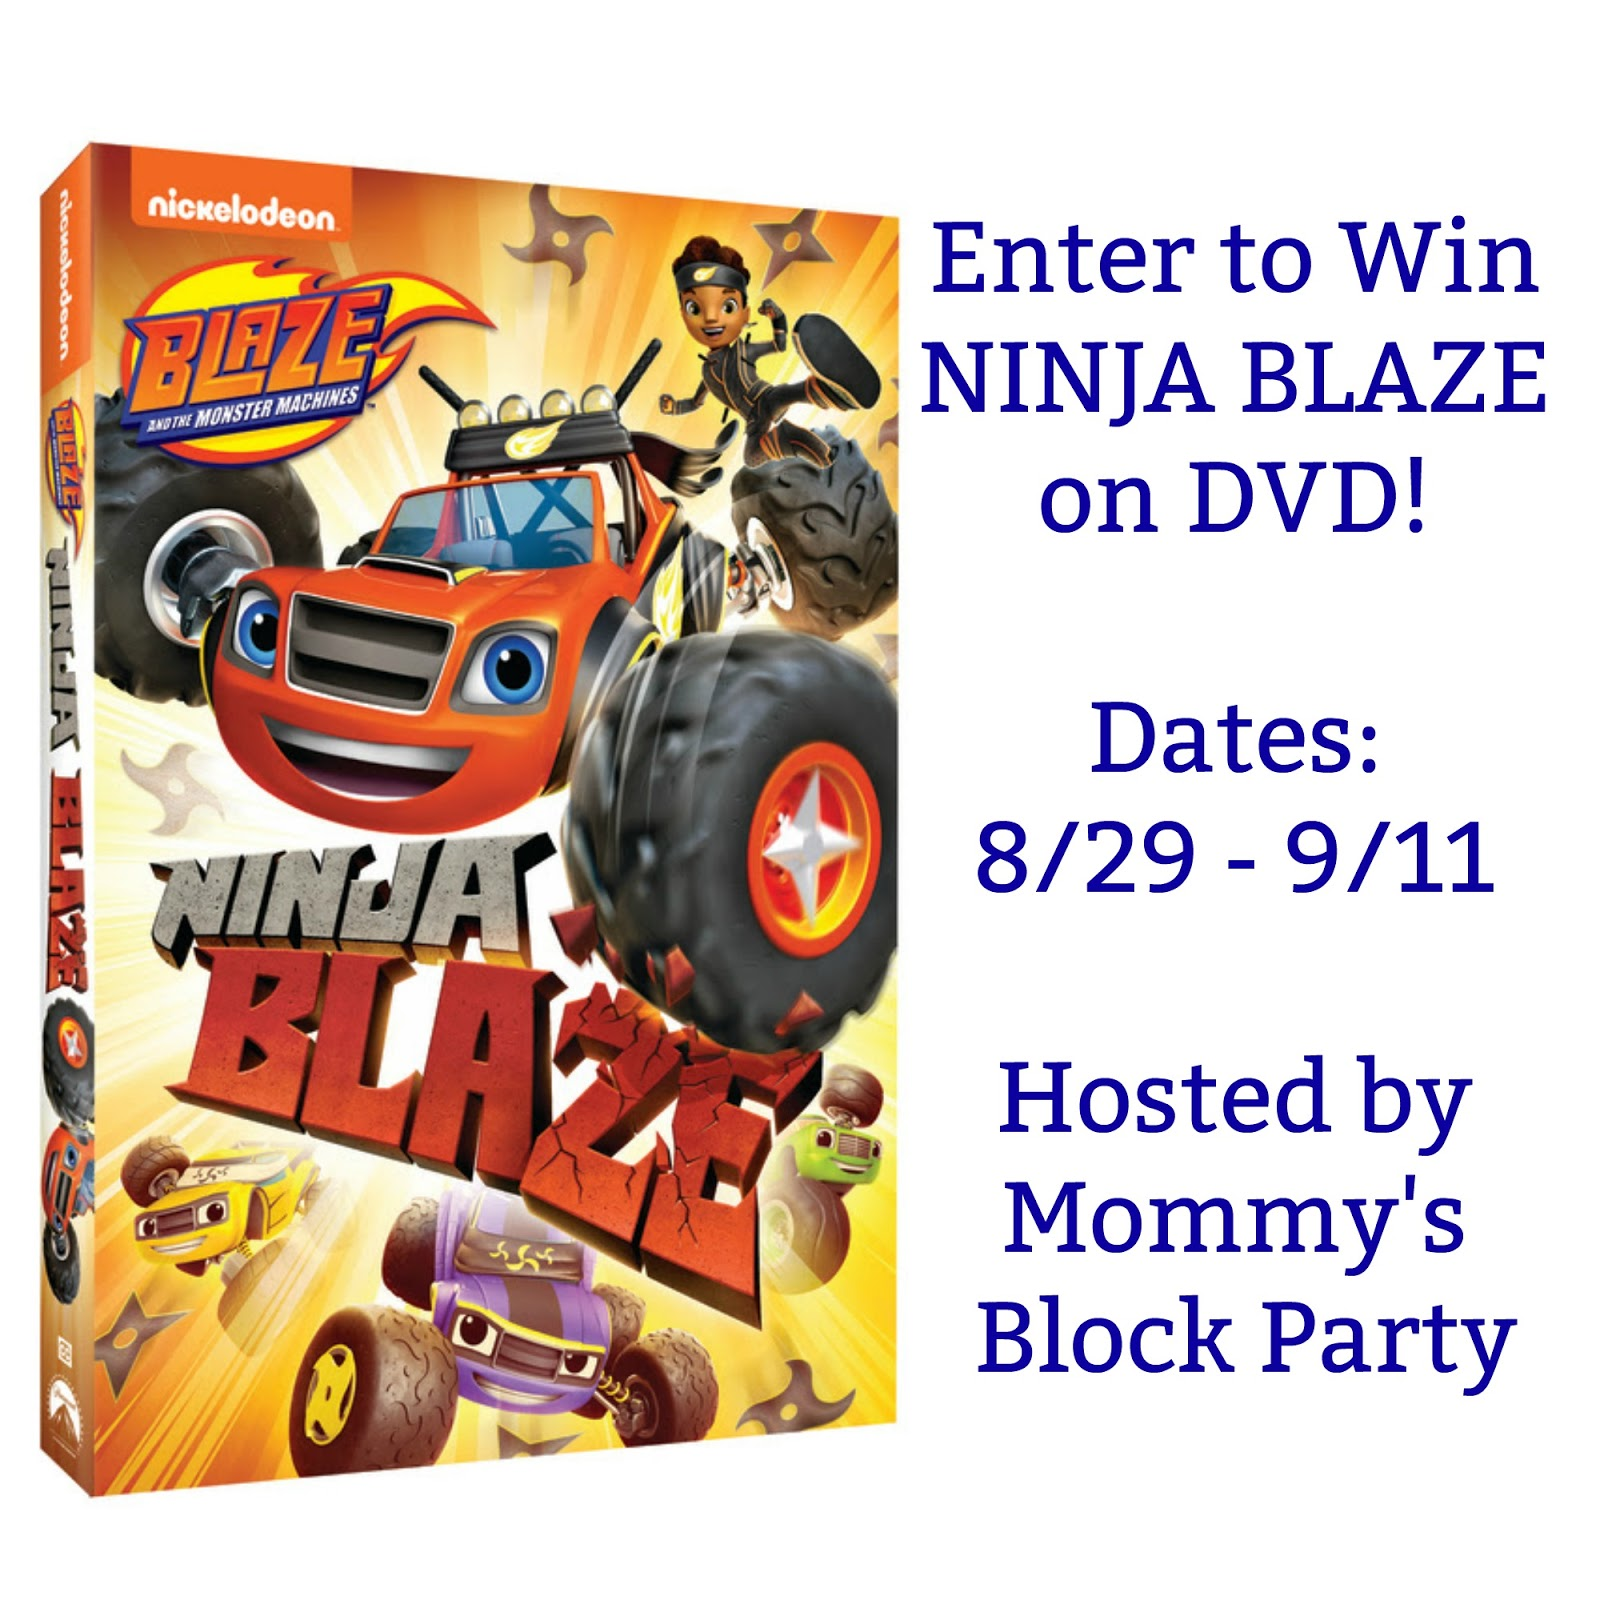 Blaze And The Monster Machines Ninja Blaze Now Available On Dvd